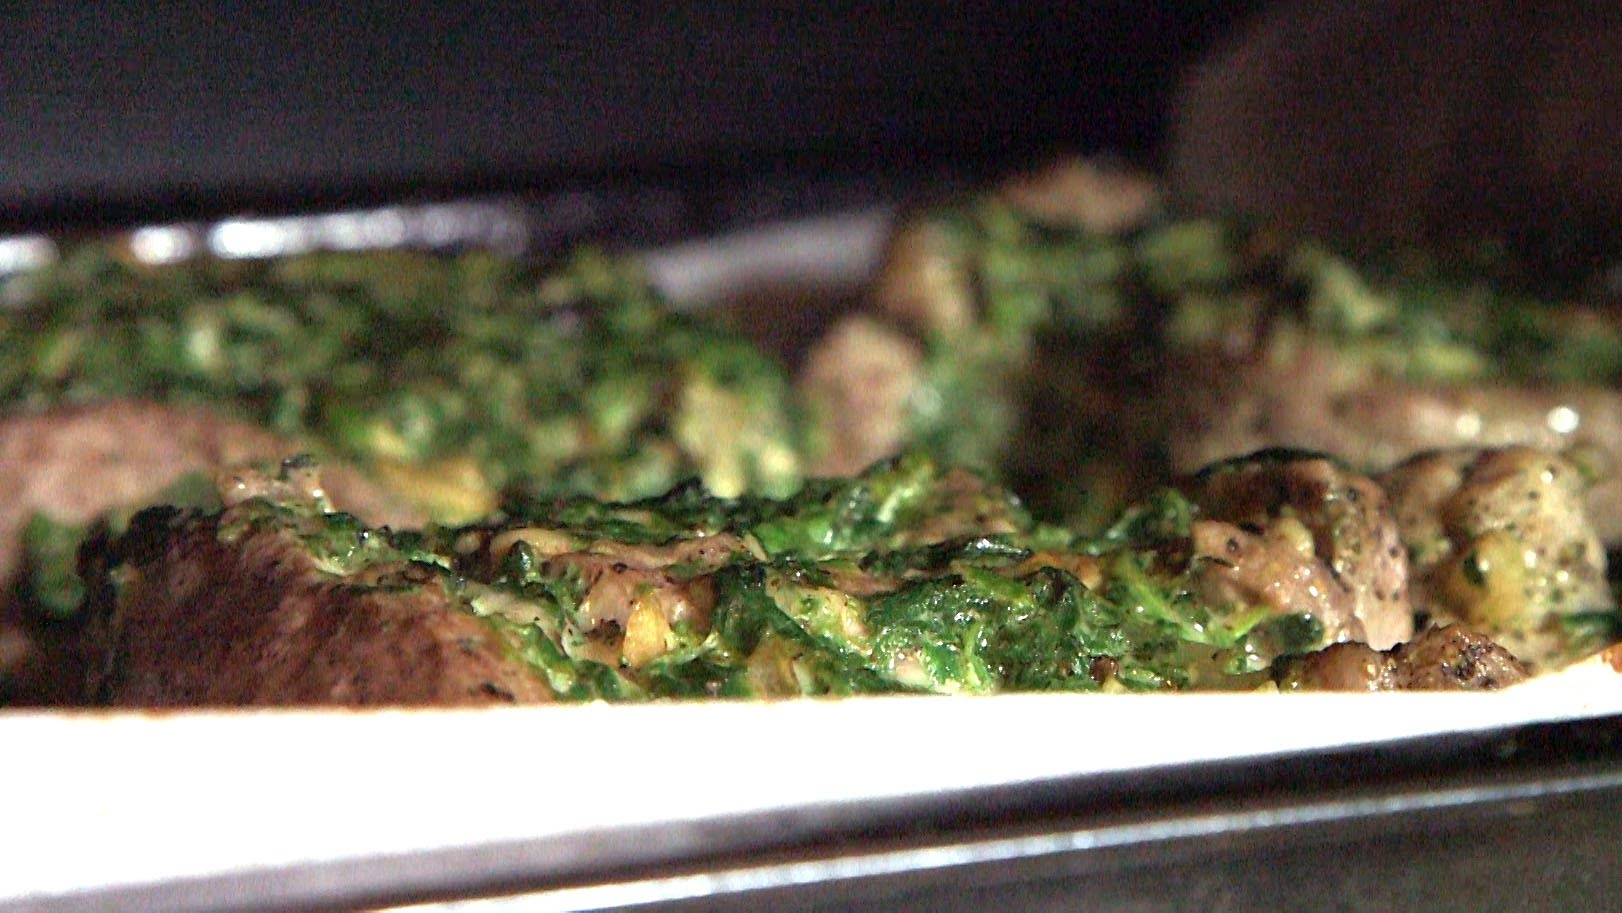 New Infused Eats recipe video: Beef Steak Pinwheels with Spinach Parmesan Cannabis Stuffing